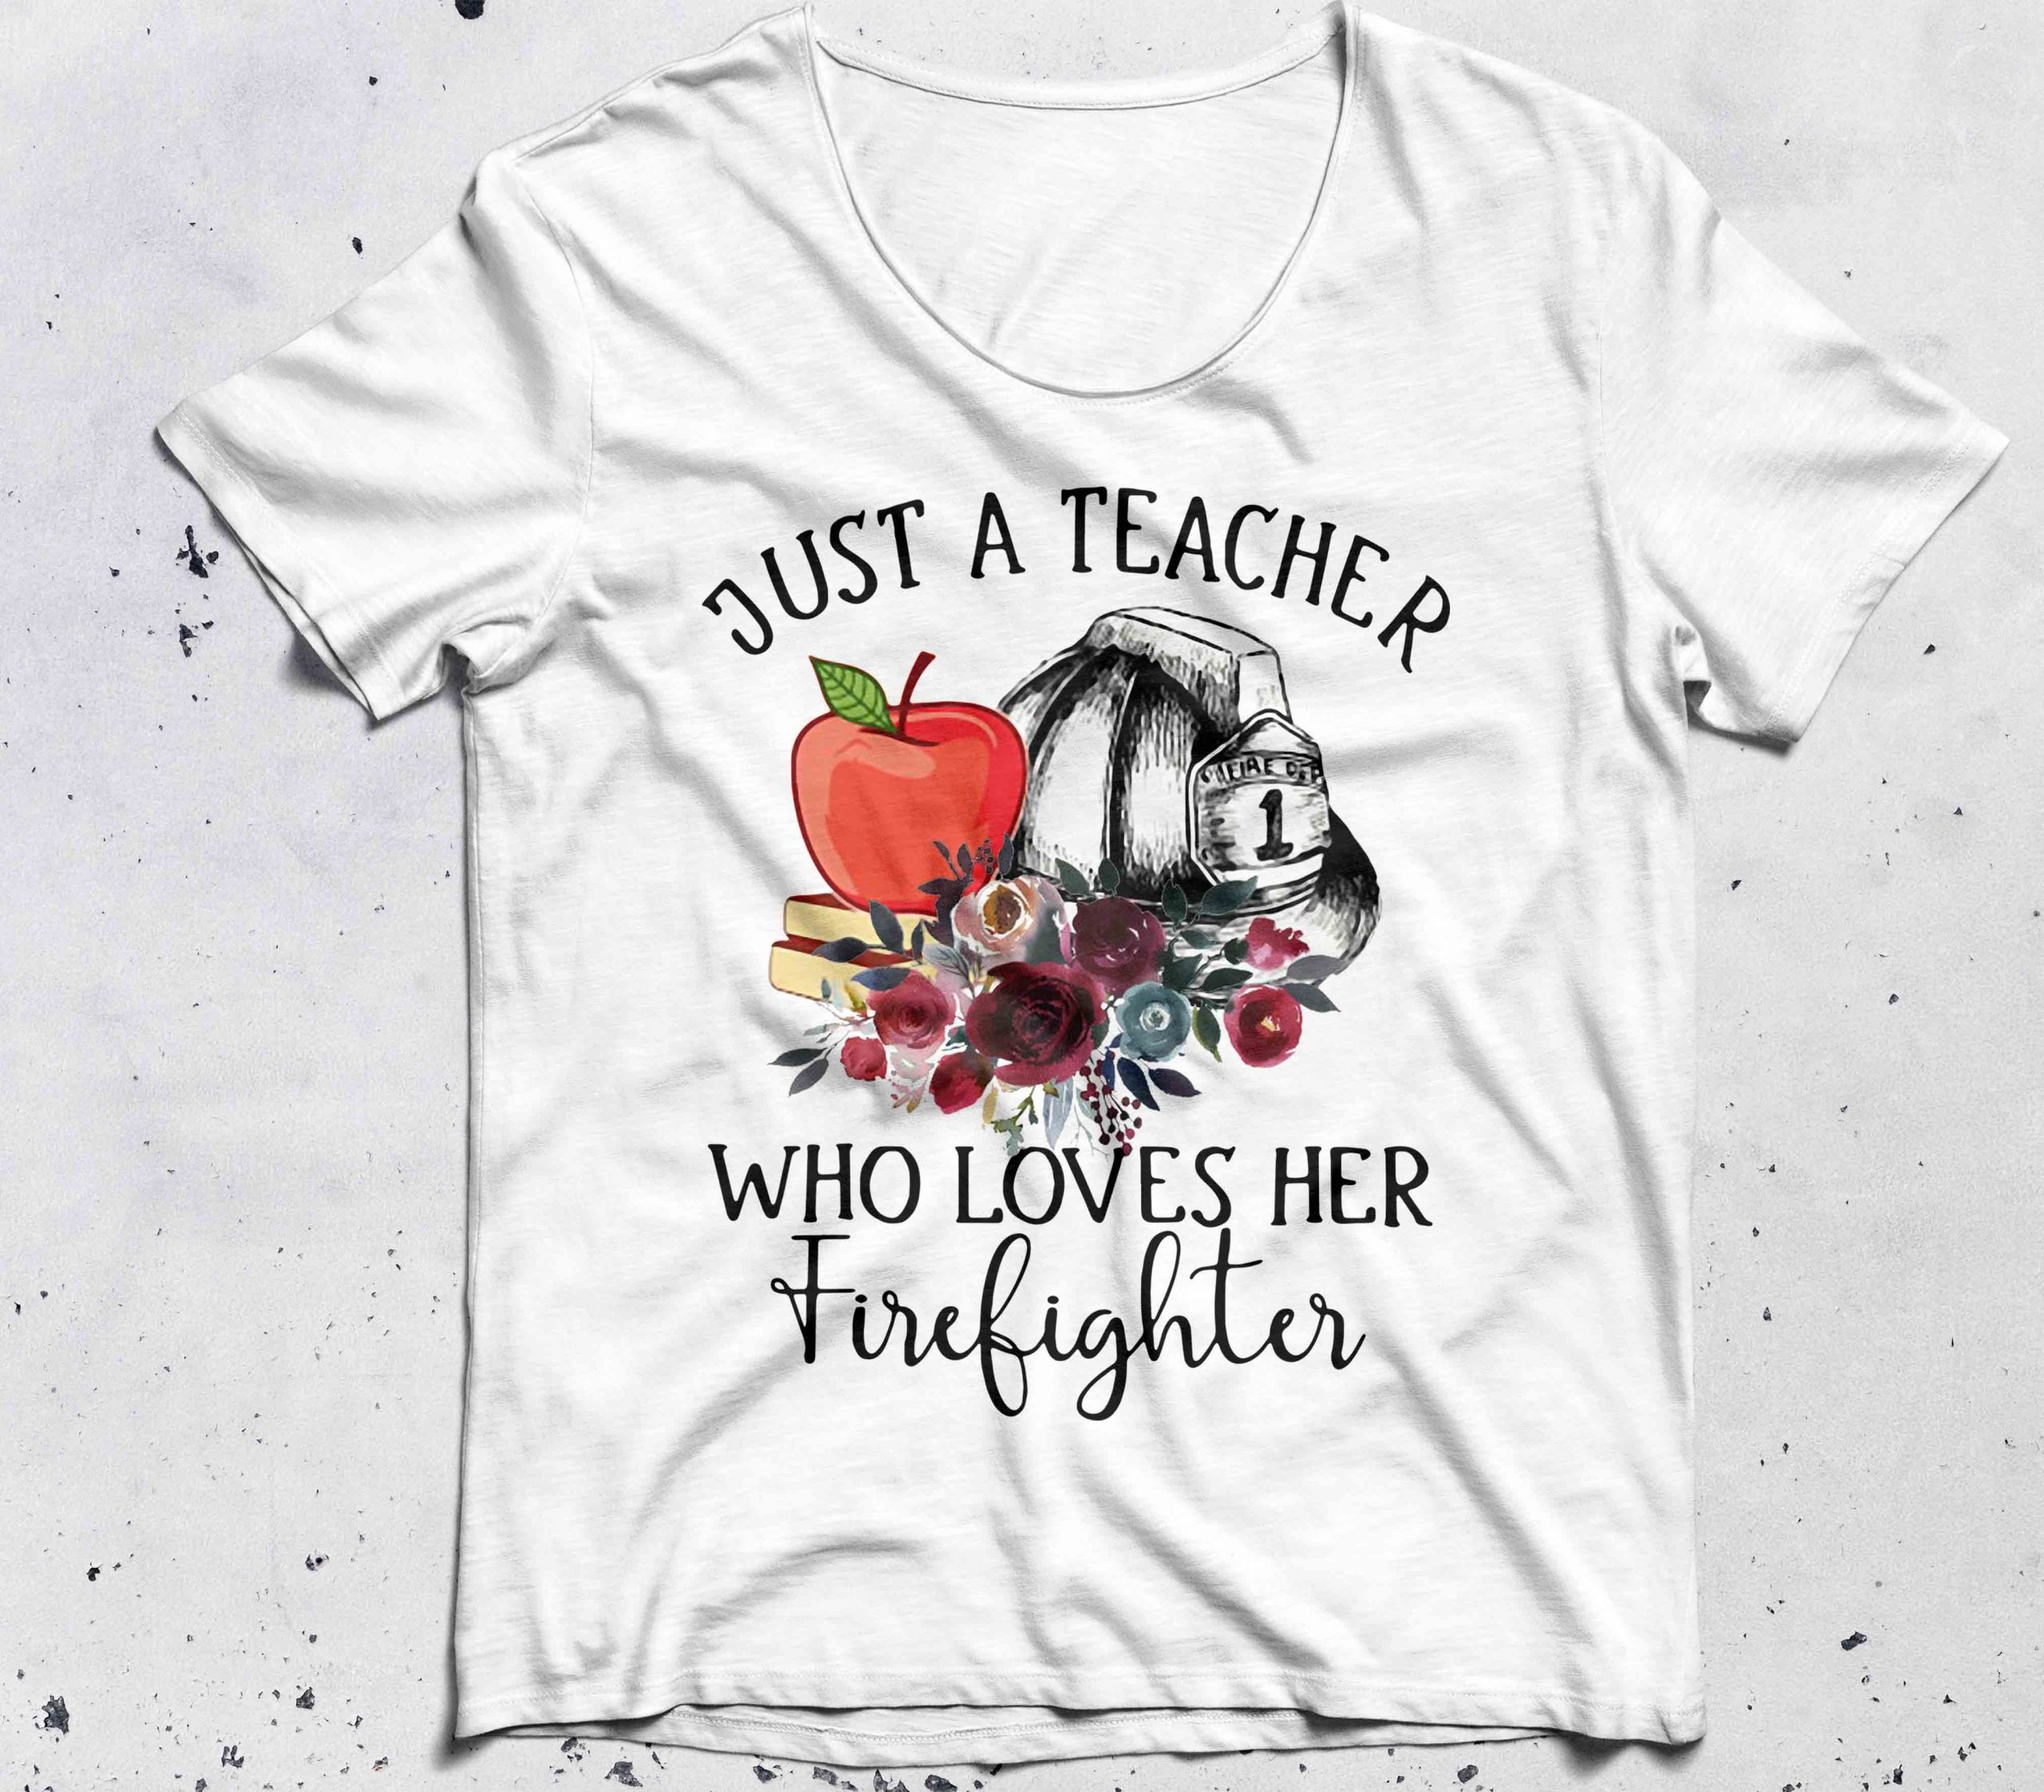 Just a teacher who loves her firefighter shirt